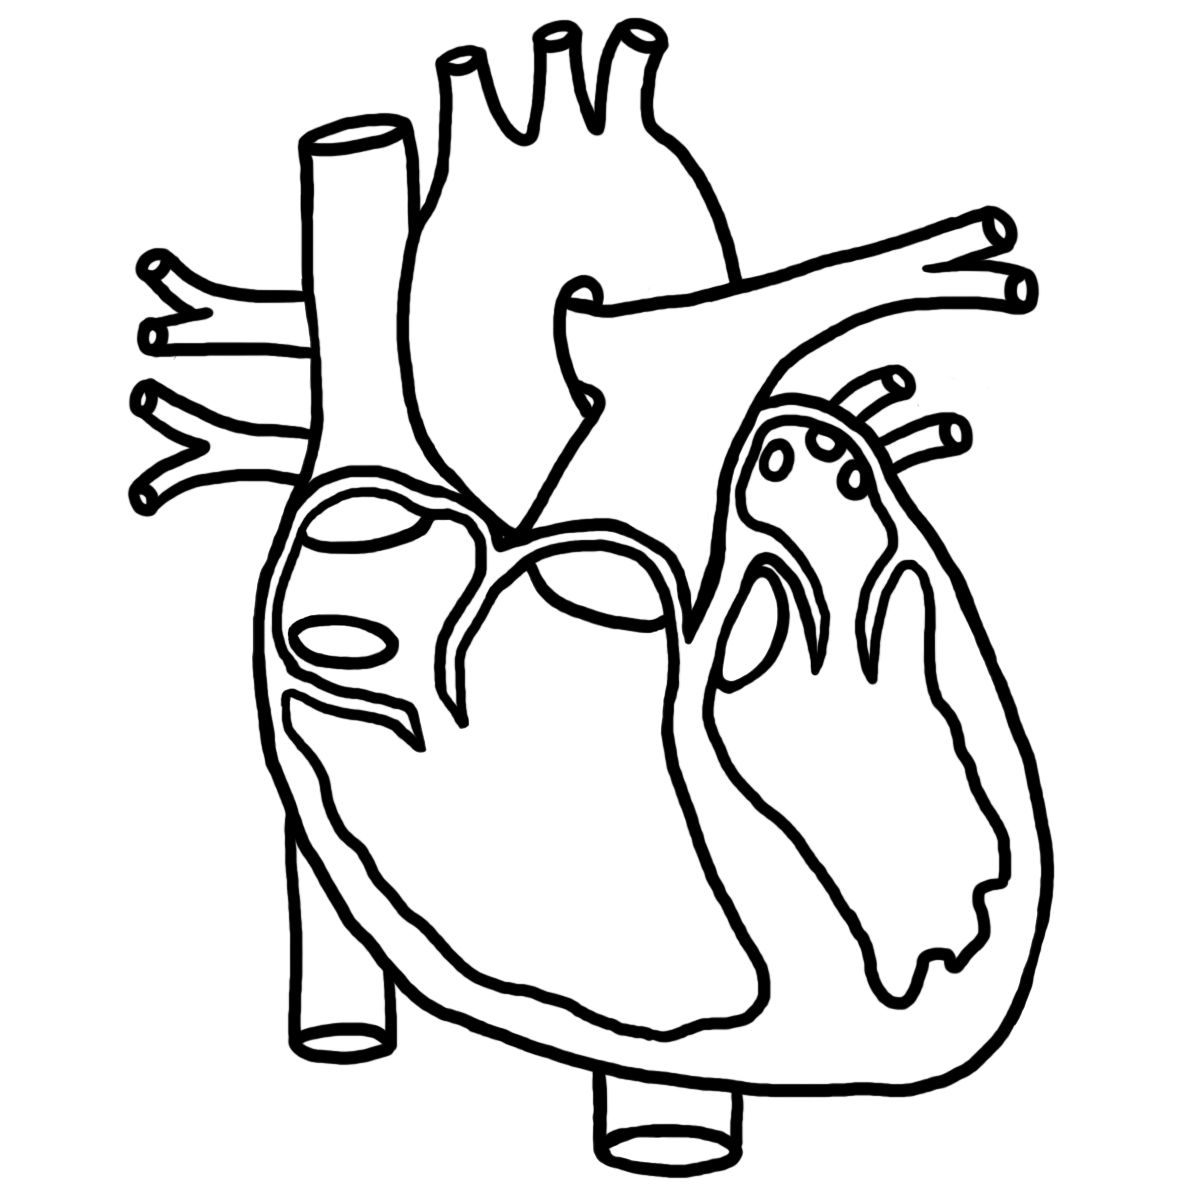 My Heart Is Set On You Free Clipart Pattern For My Nursing Friend